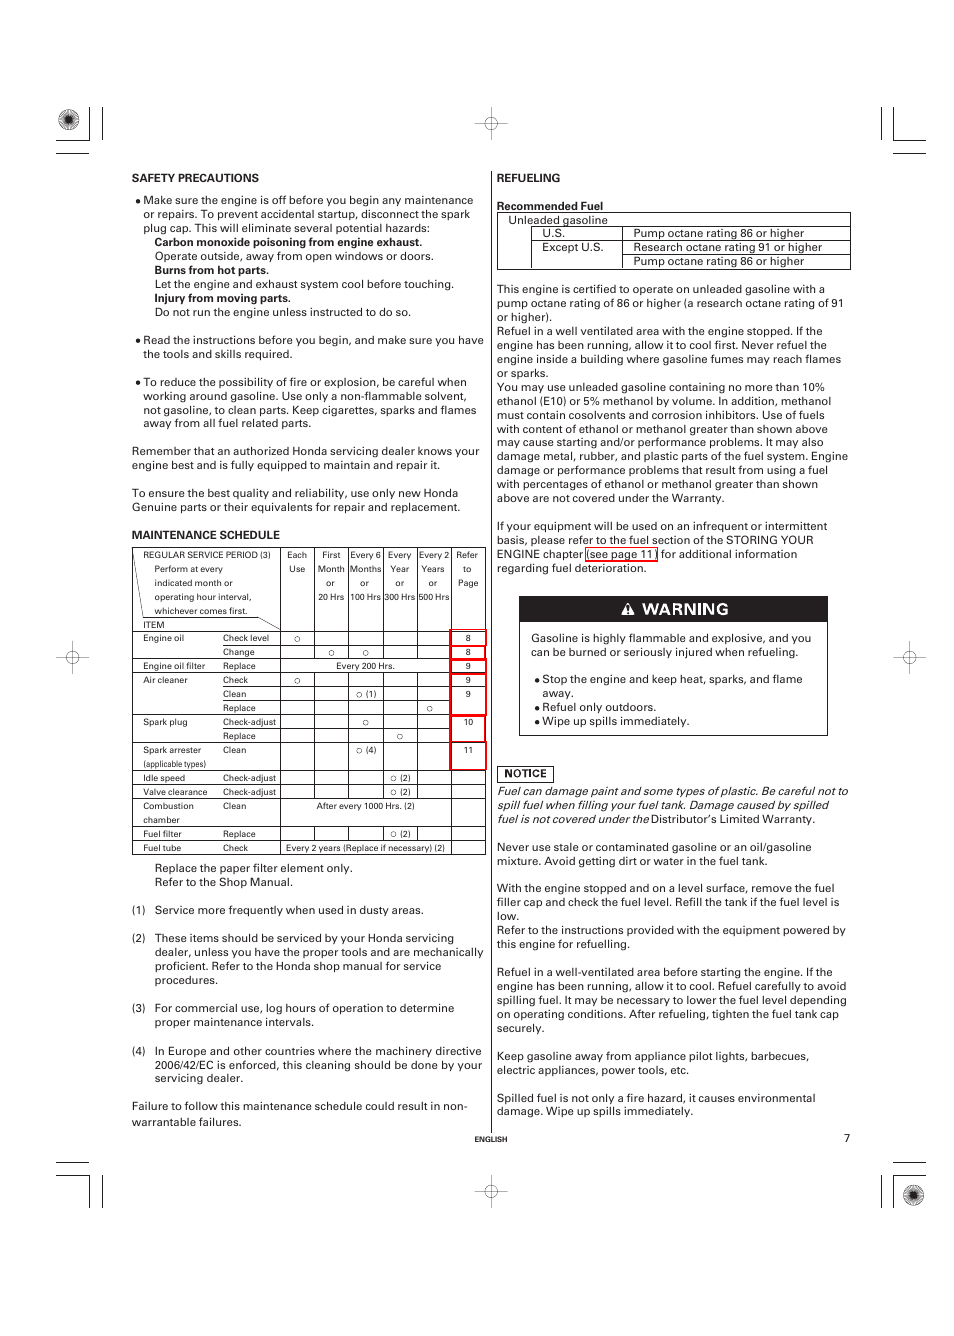 Safety precautions, Maintenance schedule, Refueling | Unique Industries  Honda GX690 User Manual | Page